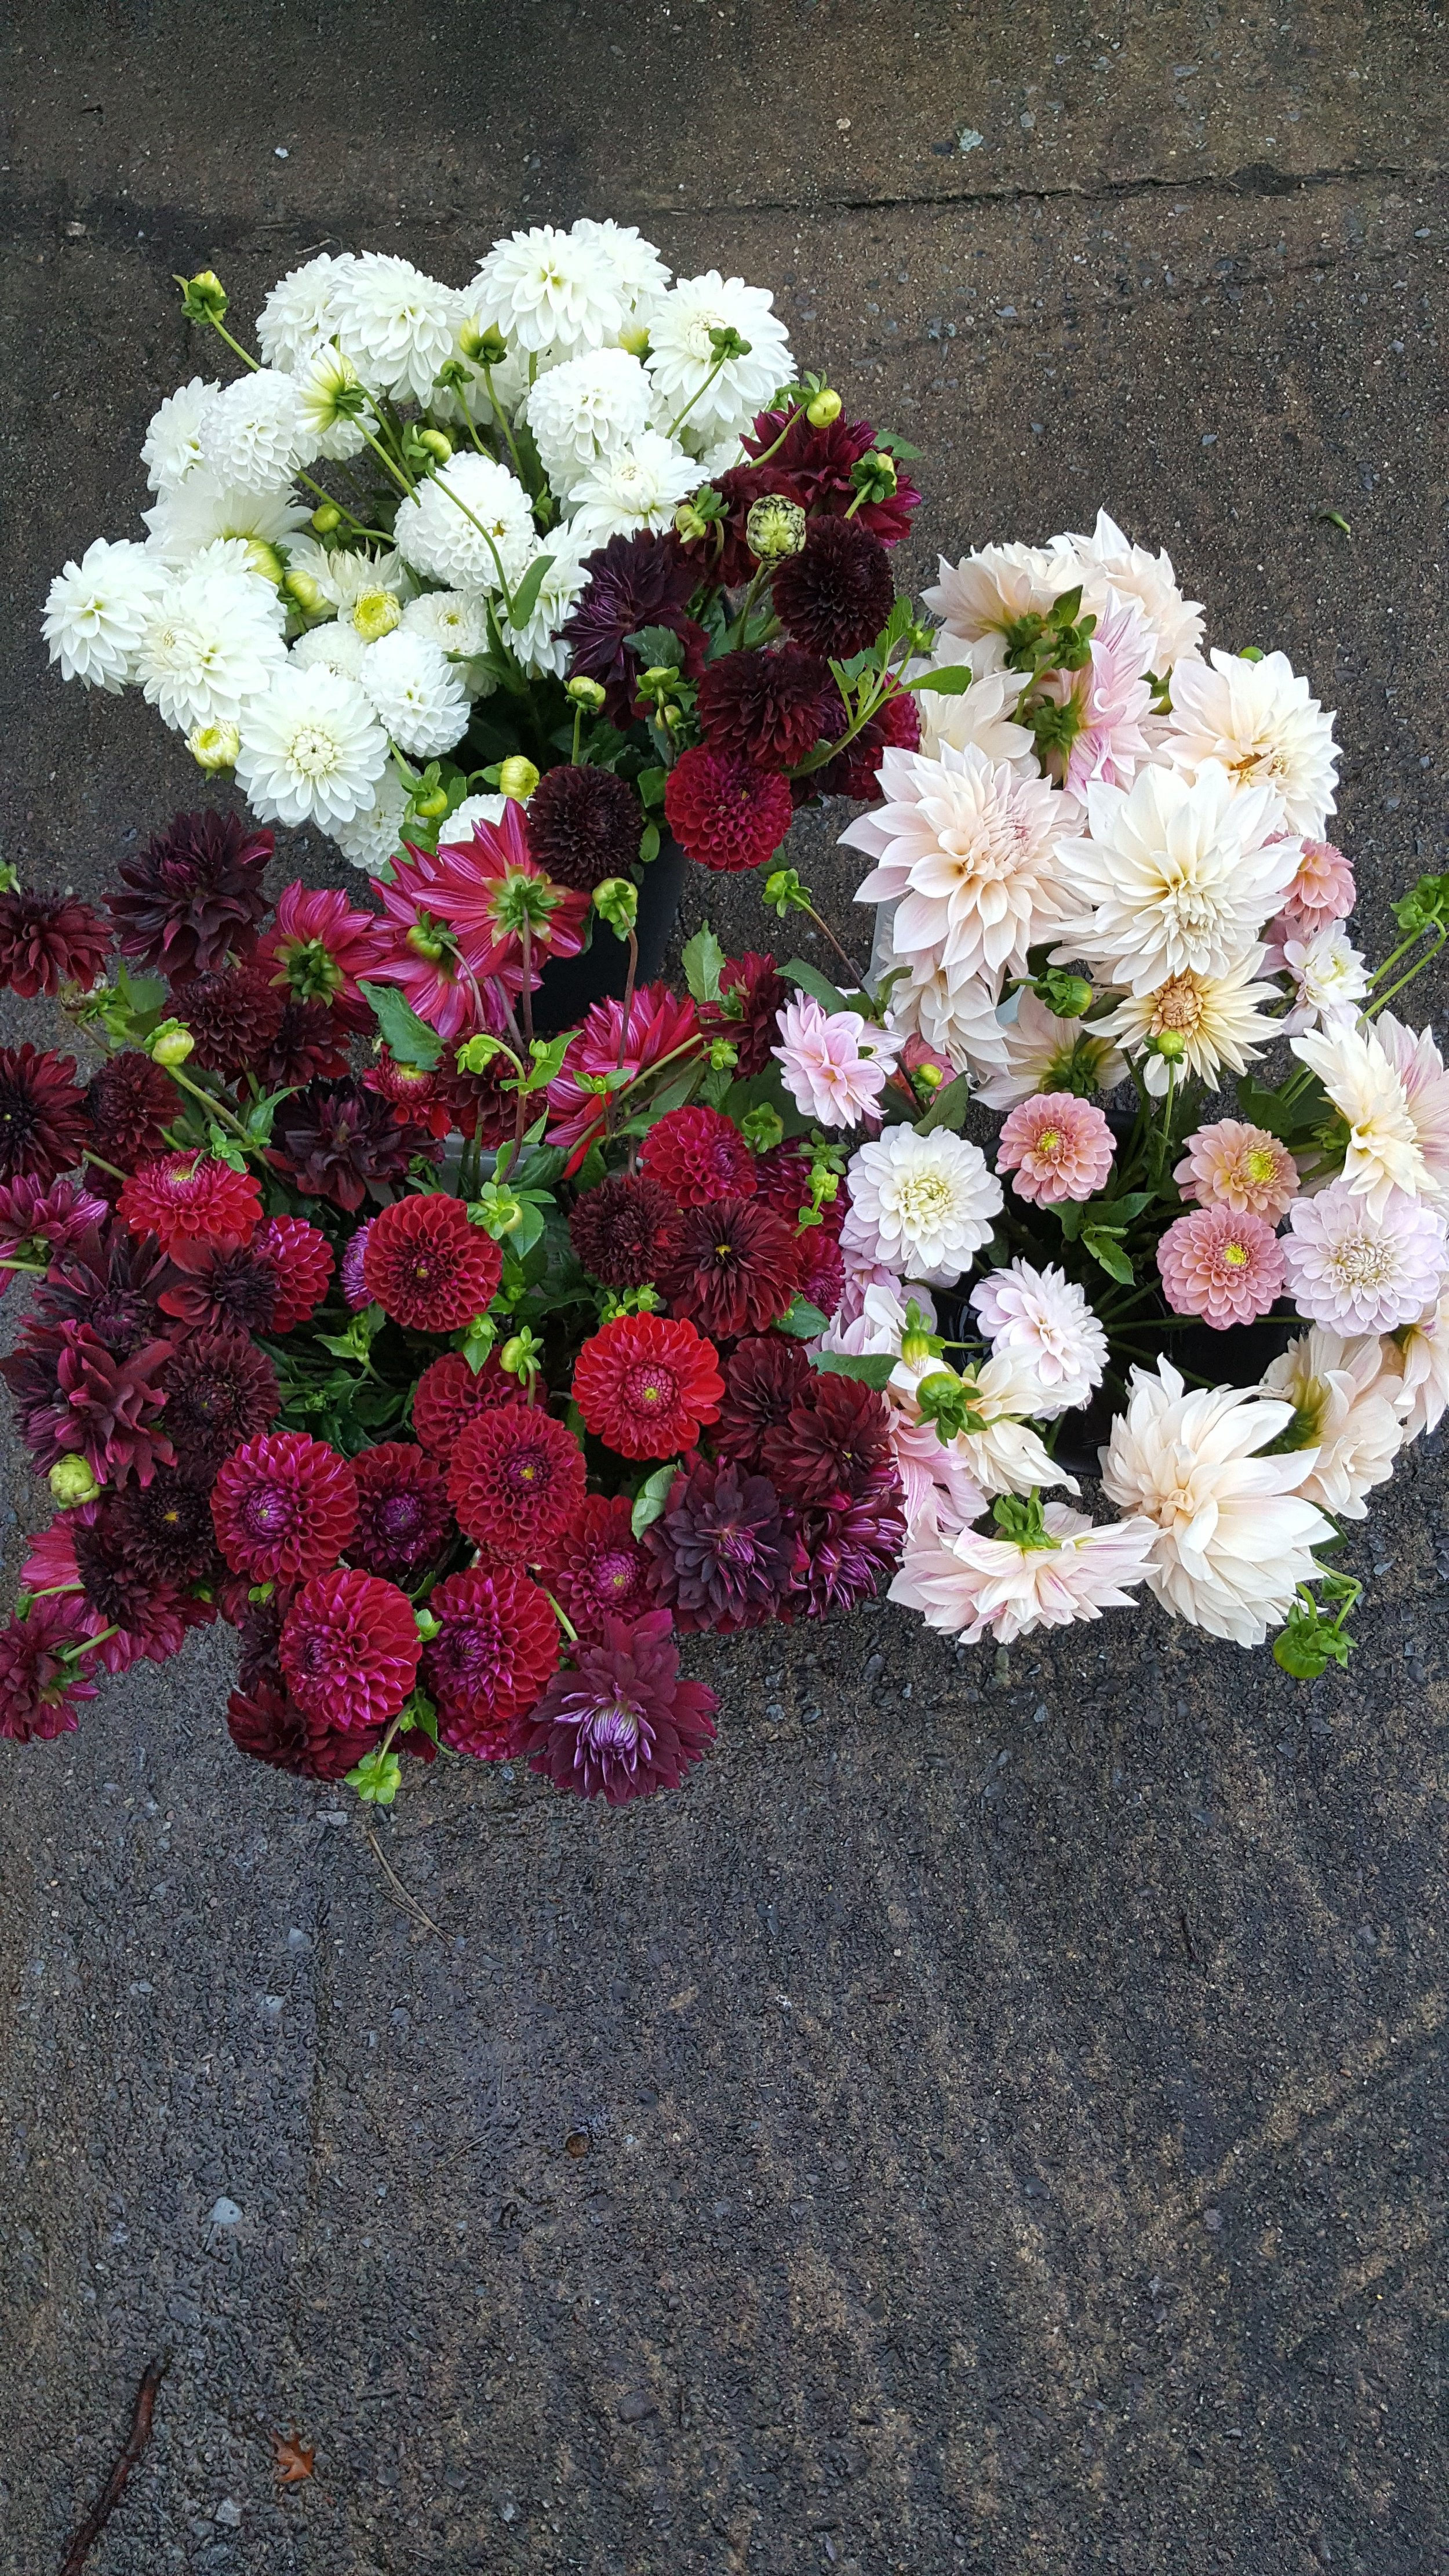 Dahlias- I have a wide range of colors and shapes!